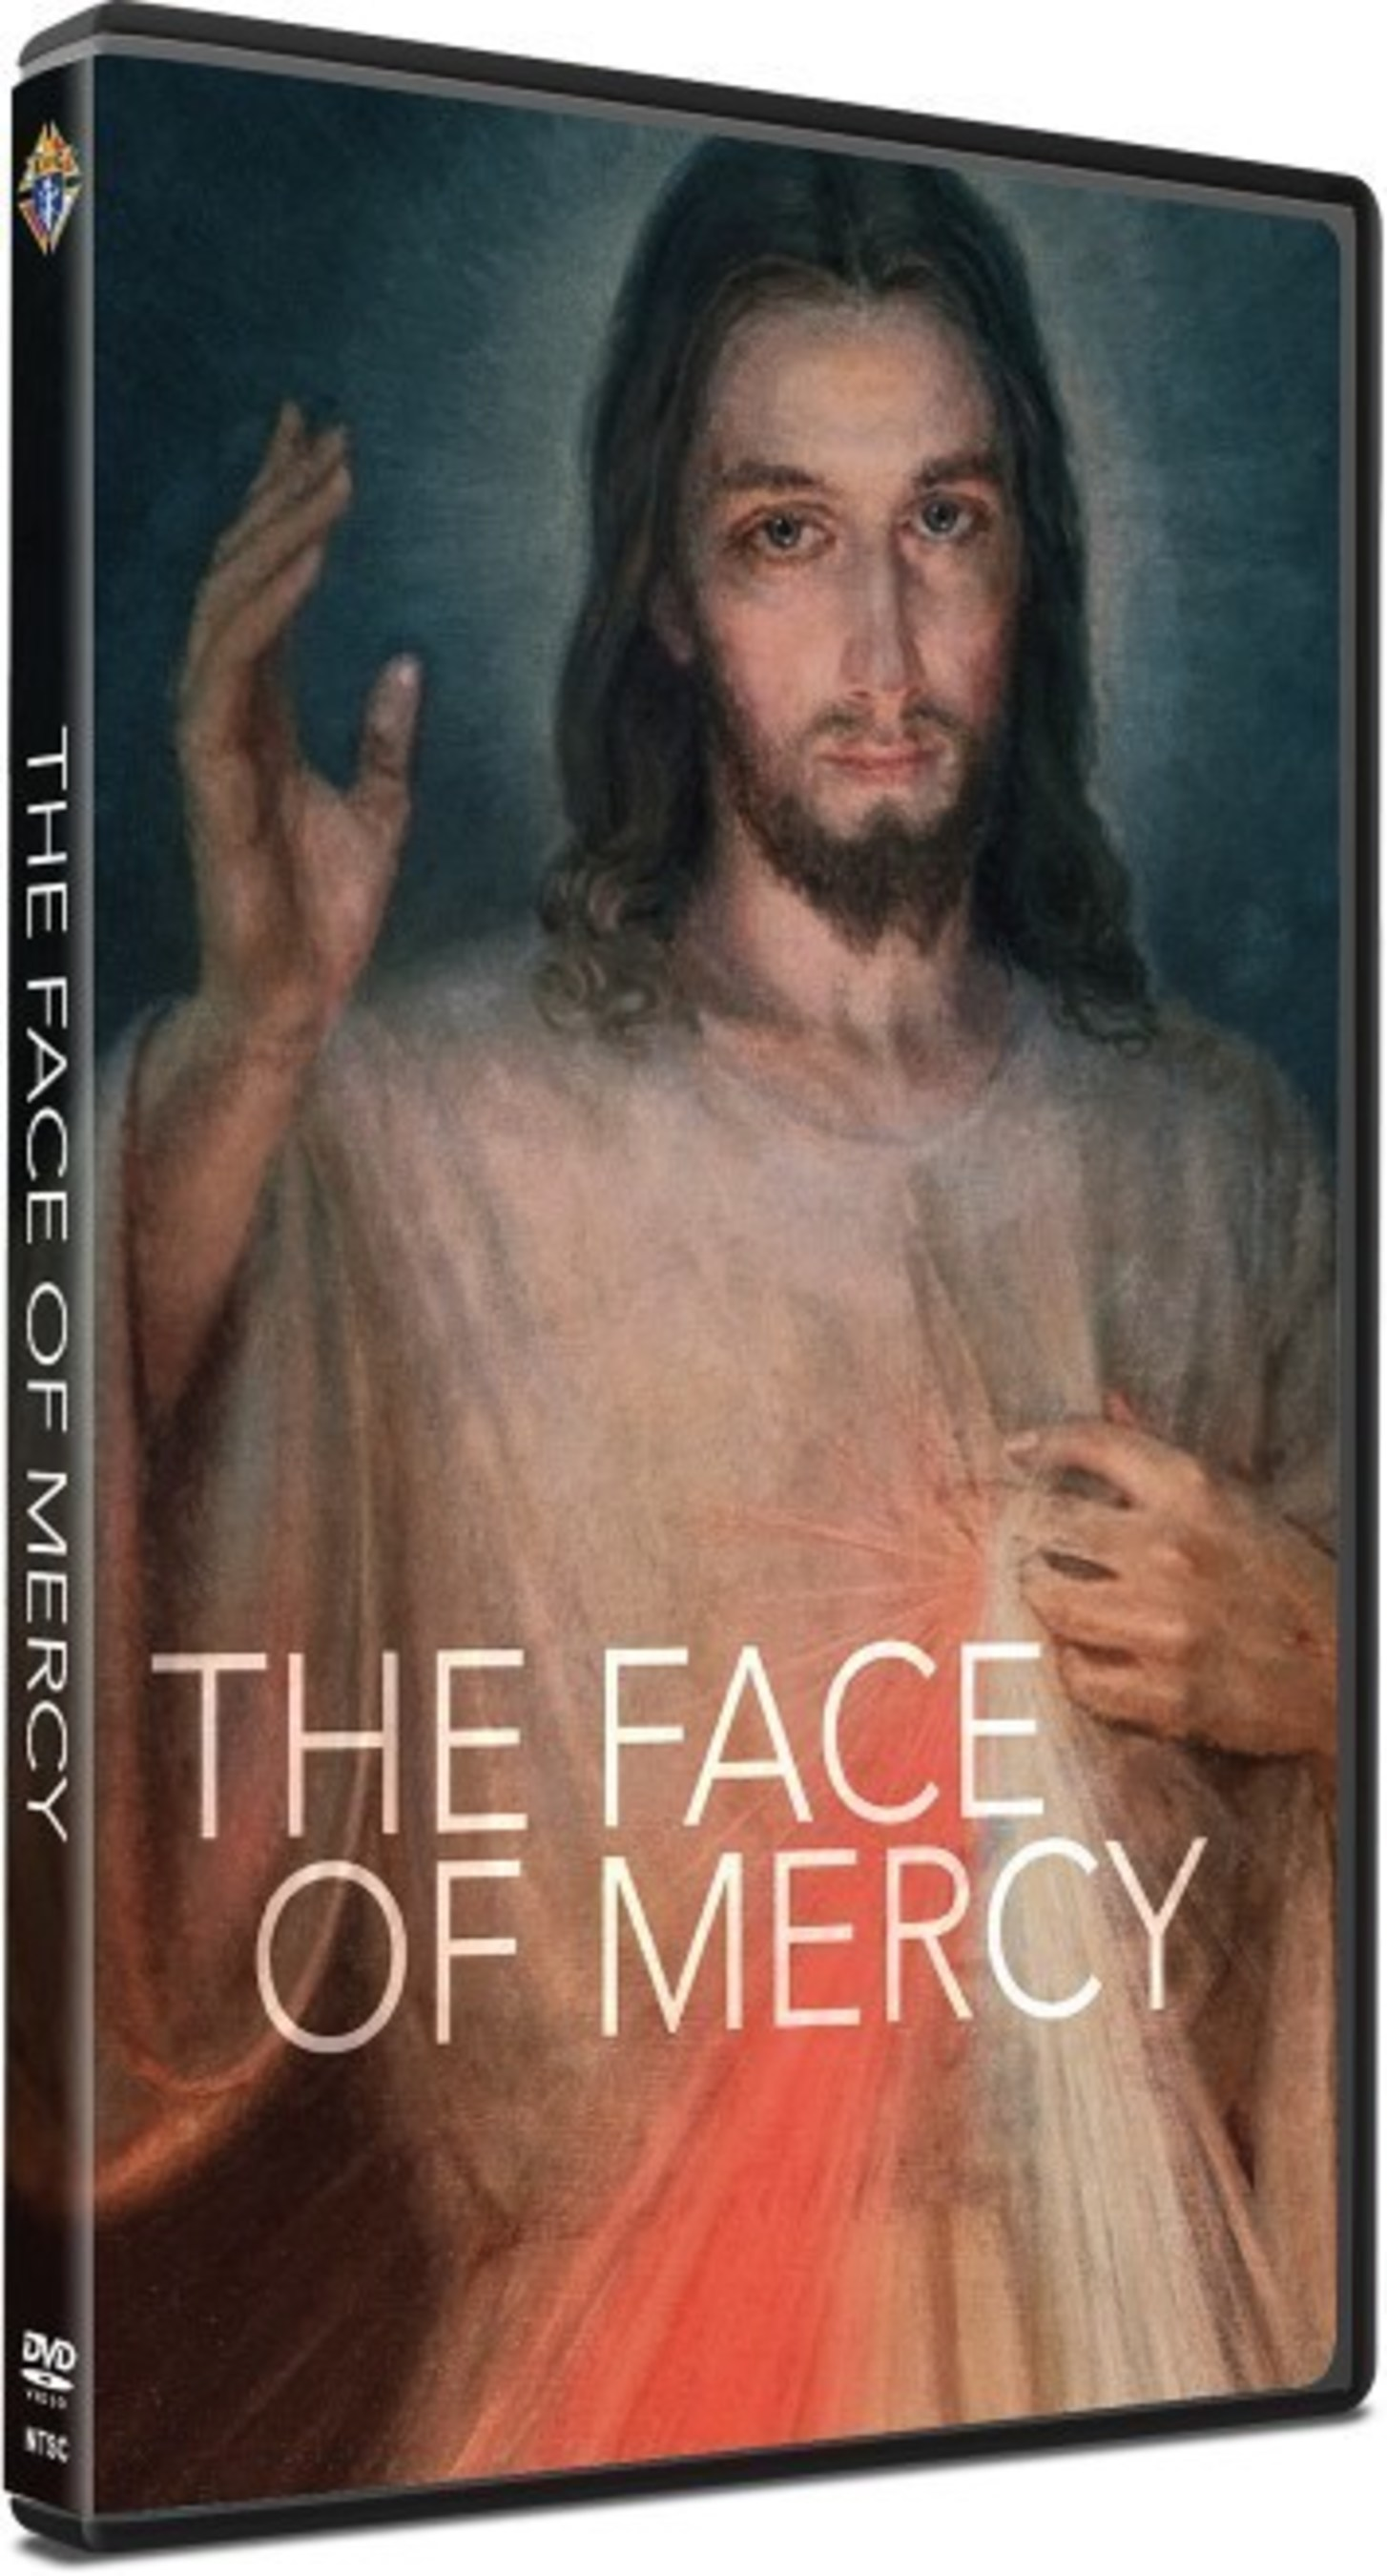 Lives Transformed by Forgiveness Featured in New FilmThe Face of Mercy, a new documentary from the Knights of Columbus, highlights the stories of several individuals who have experienced the power of mercy and forgiveness in their own lives. A Rwandan genocide survivor, a former NFL player, an NYPD officer who was shot and paralyzed are among those featured. All embraced the same message of Divine Mercy that inspired and animated Pope Francis' Year of Mercy, which ends Nov. 20. The DVD is available online at faceofmercyfilm.com.